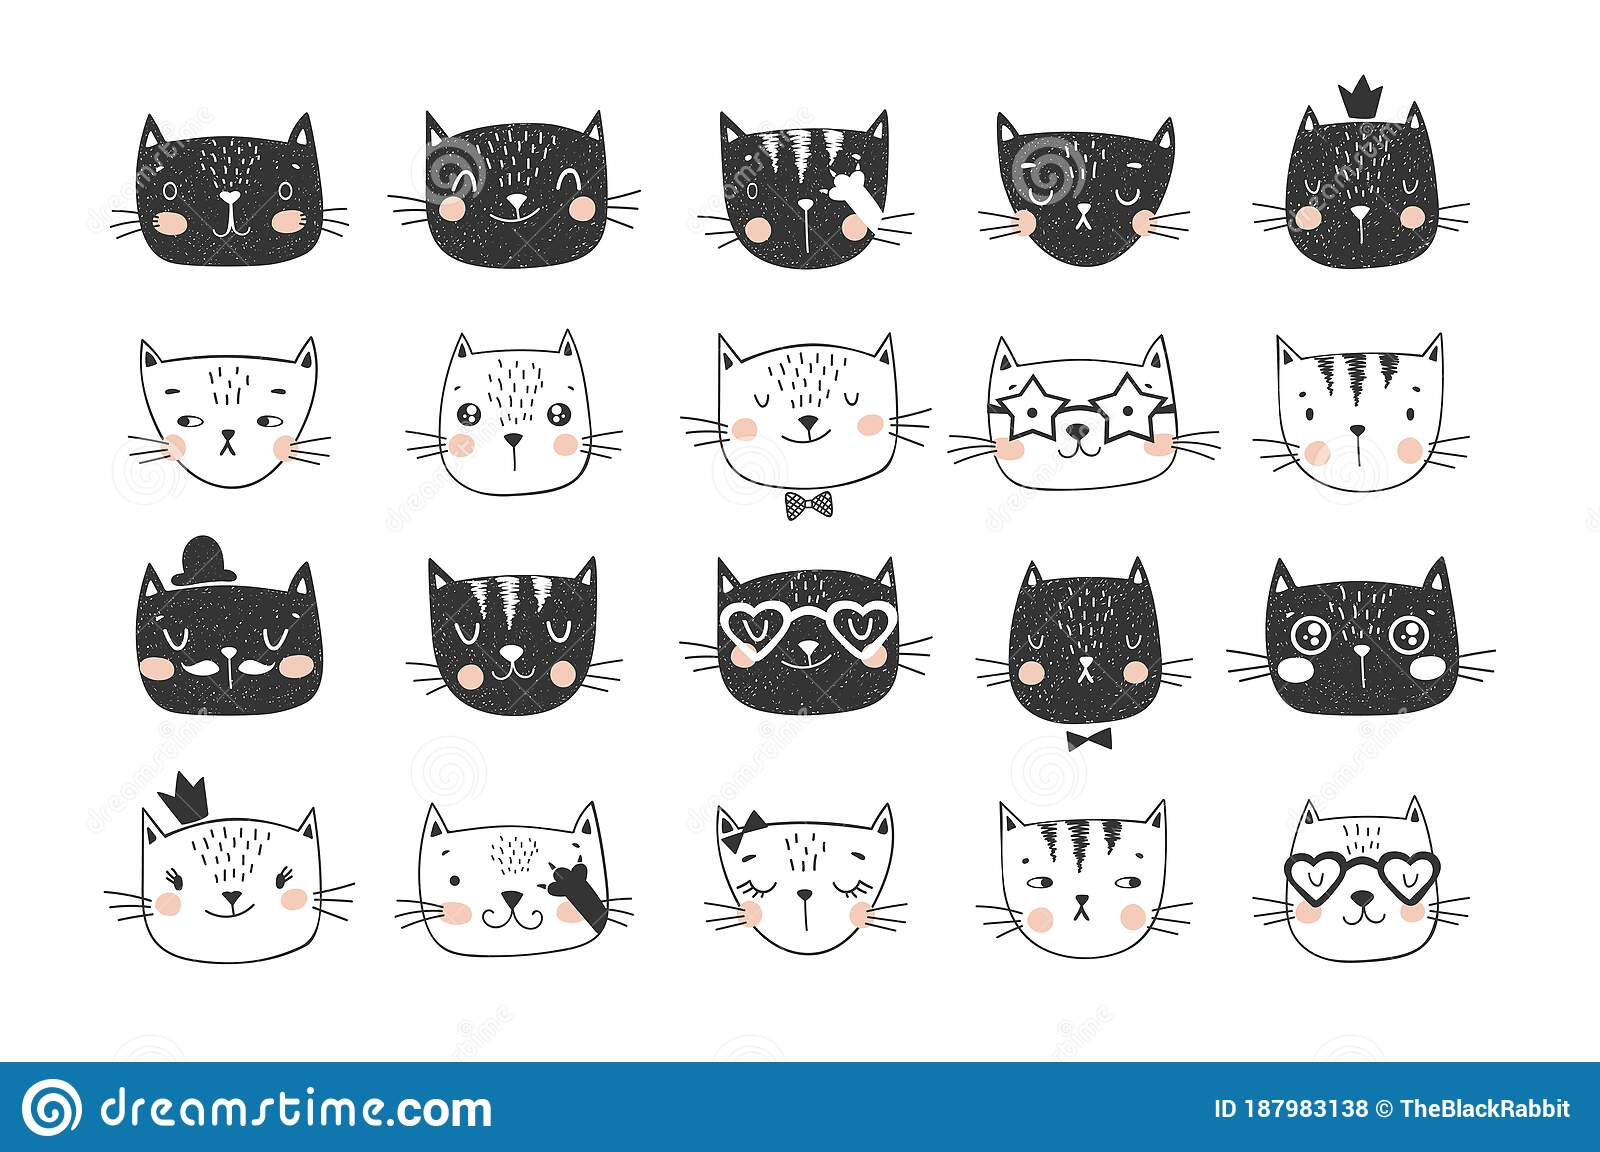 Cute Cat Faces Doodle Collection For Stickers Tricolor Stock Illustration Illustration Of Cartoon Collection 187983138